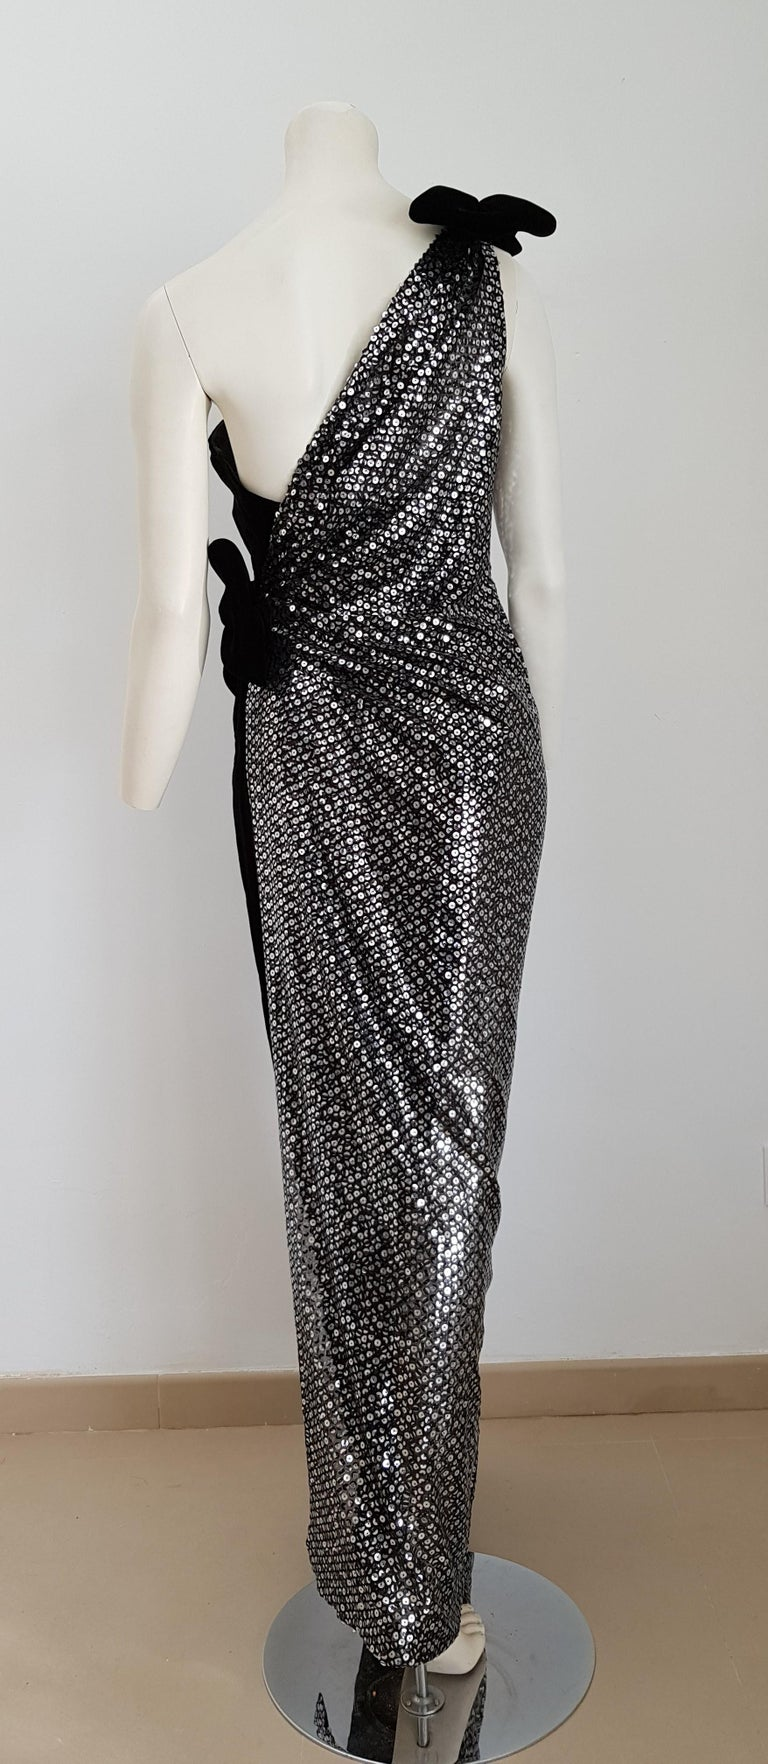 VALENTINO Haute Couture, sequins, one shoulder strap, velvet black gown dress - Unworn, New.  SIZE: equivalent to about Small / Medium, please review approx measurements as follows in cm: lenght 149, chest underarm to underarm 49, bust circumference